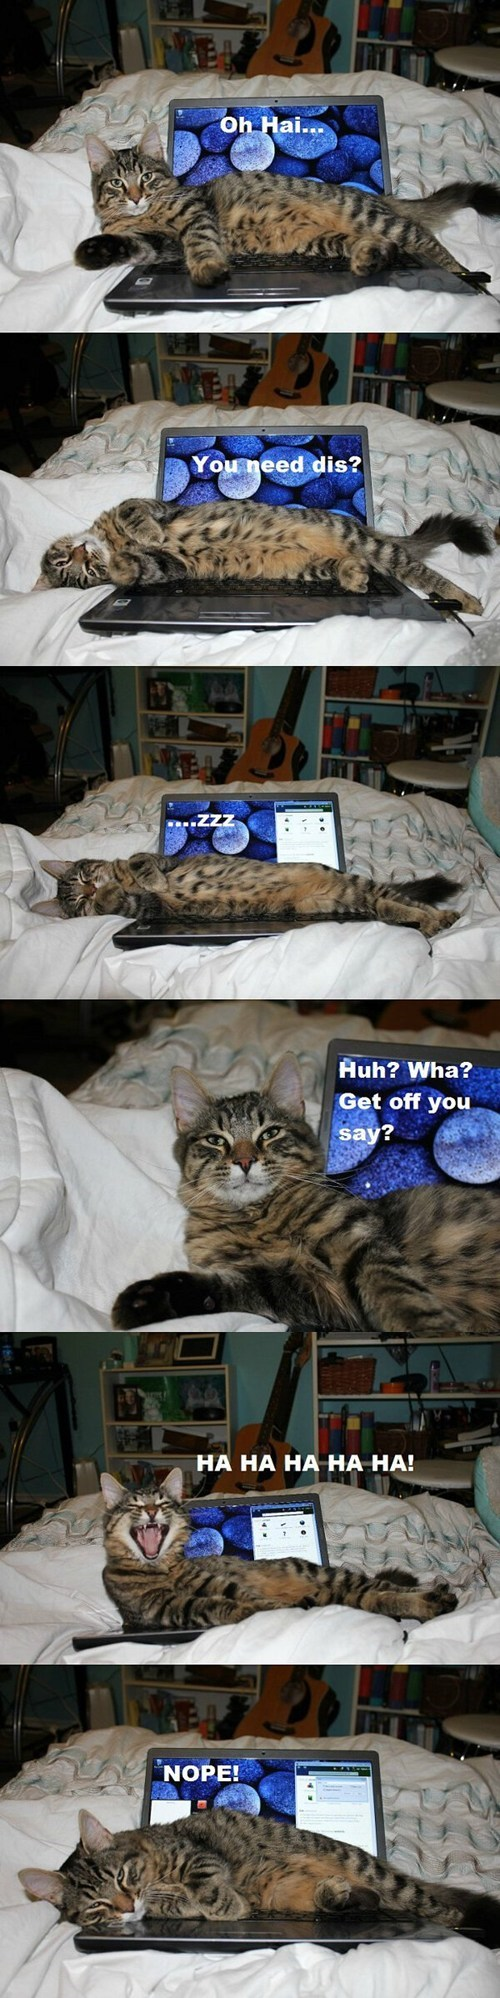 laptops computers annoying in the way captions no multipanel Cats rude - 6850799360